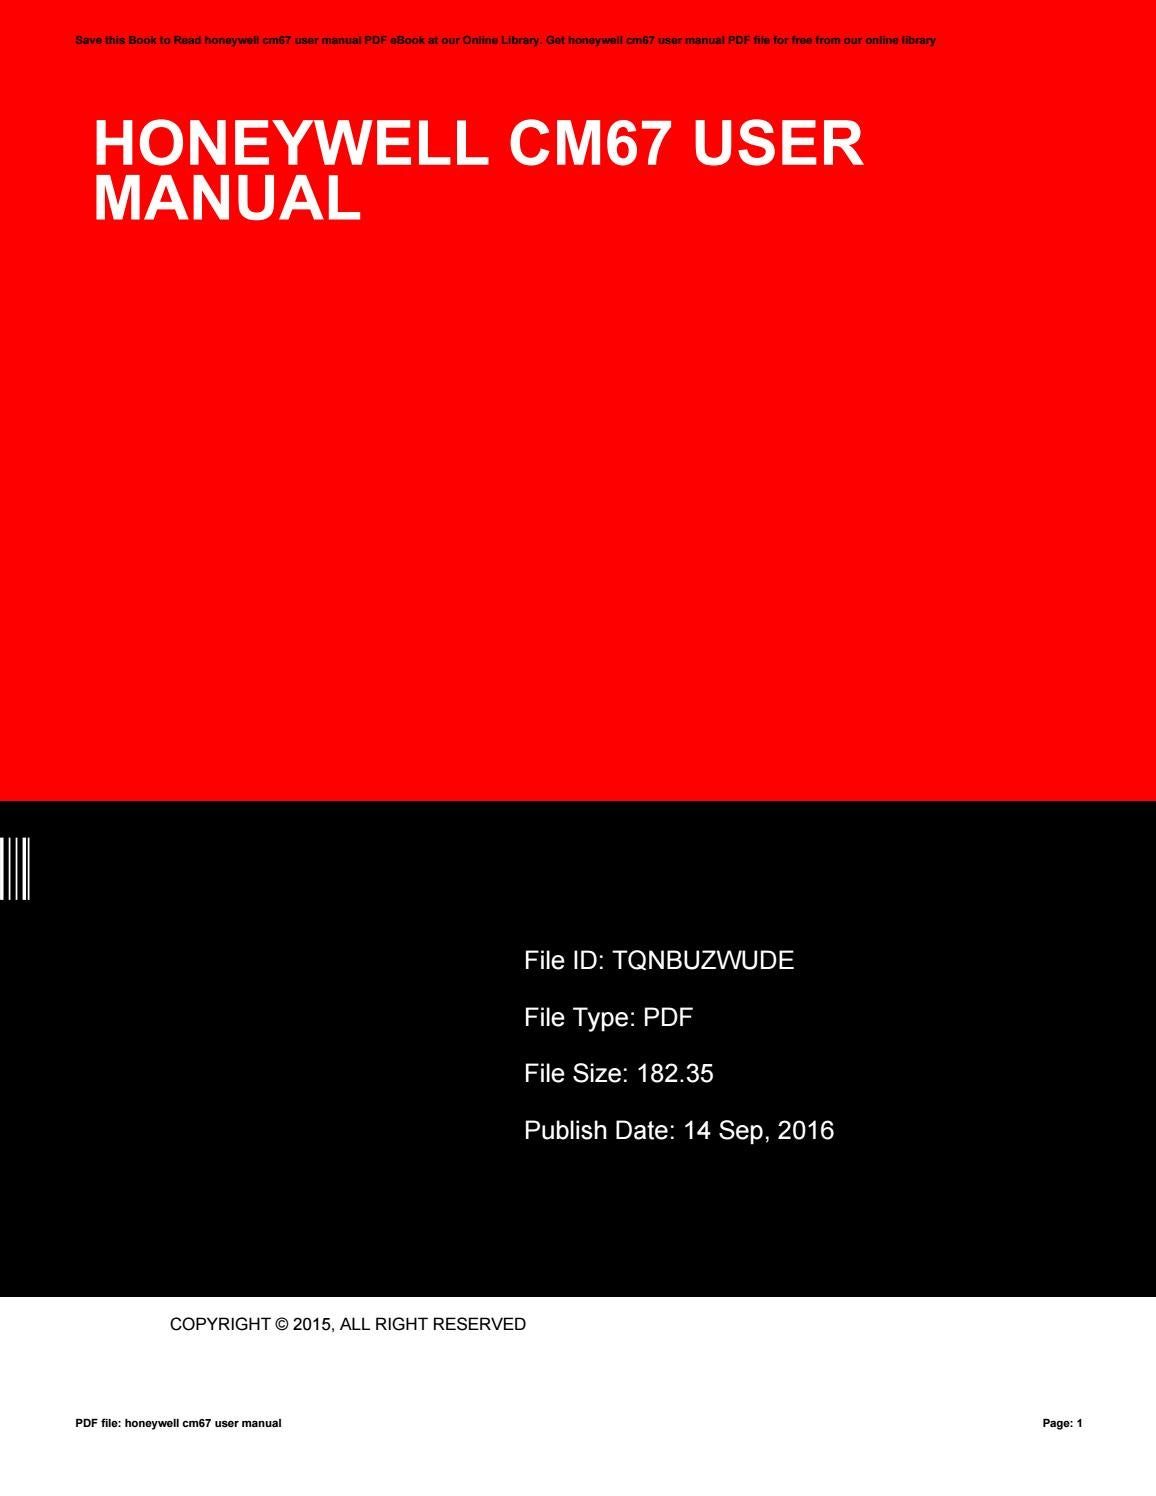 Honeywell cm67ng central heating download manual for free now.